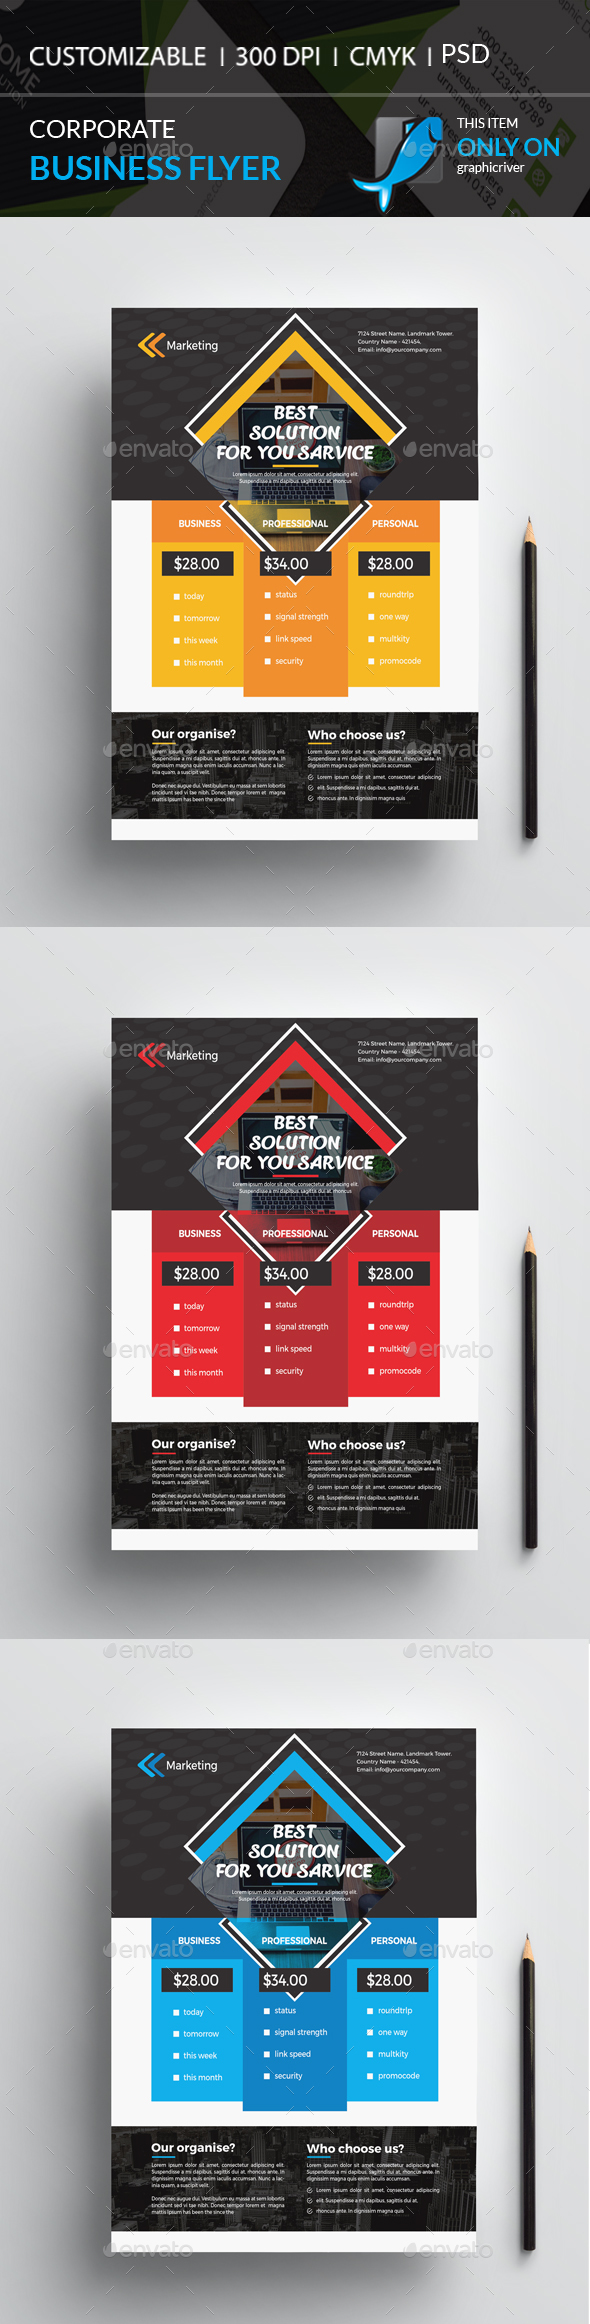 Multipurpose Flyer Price Designs - Corporate Flyers